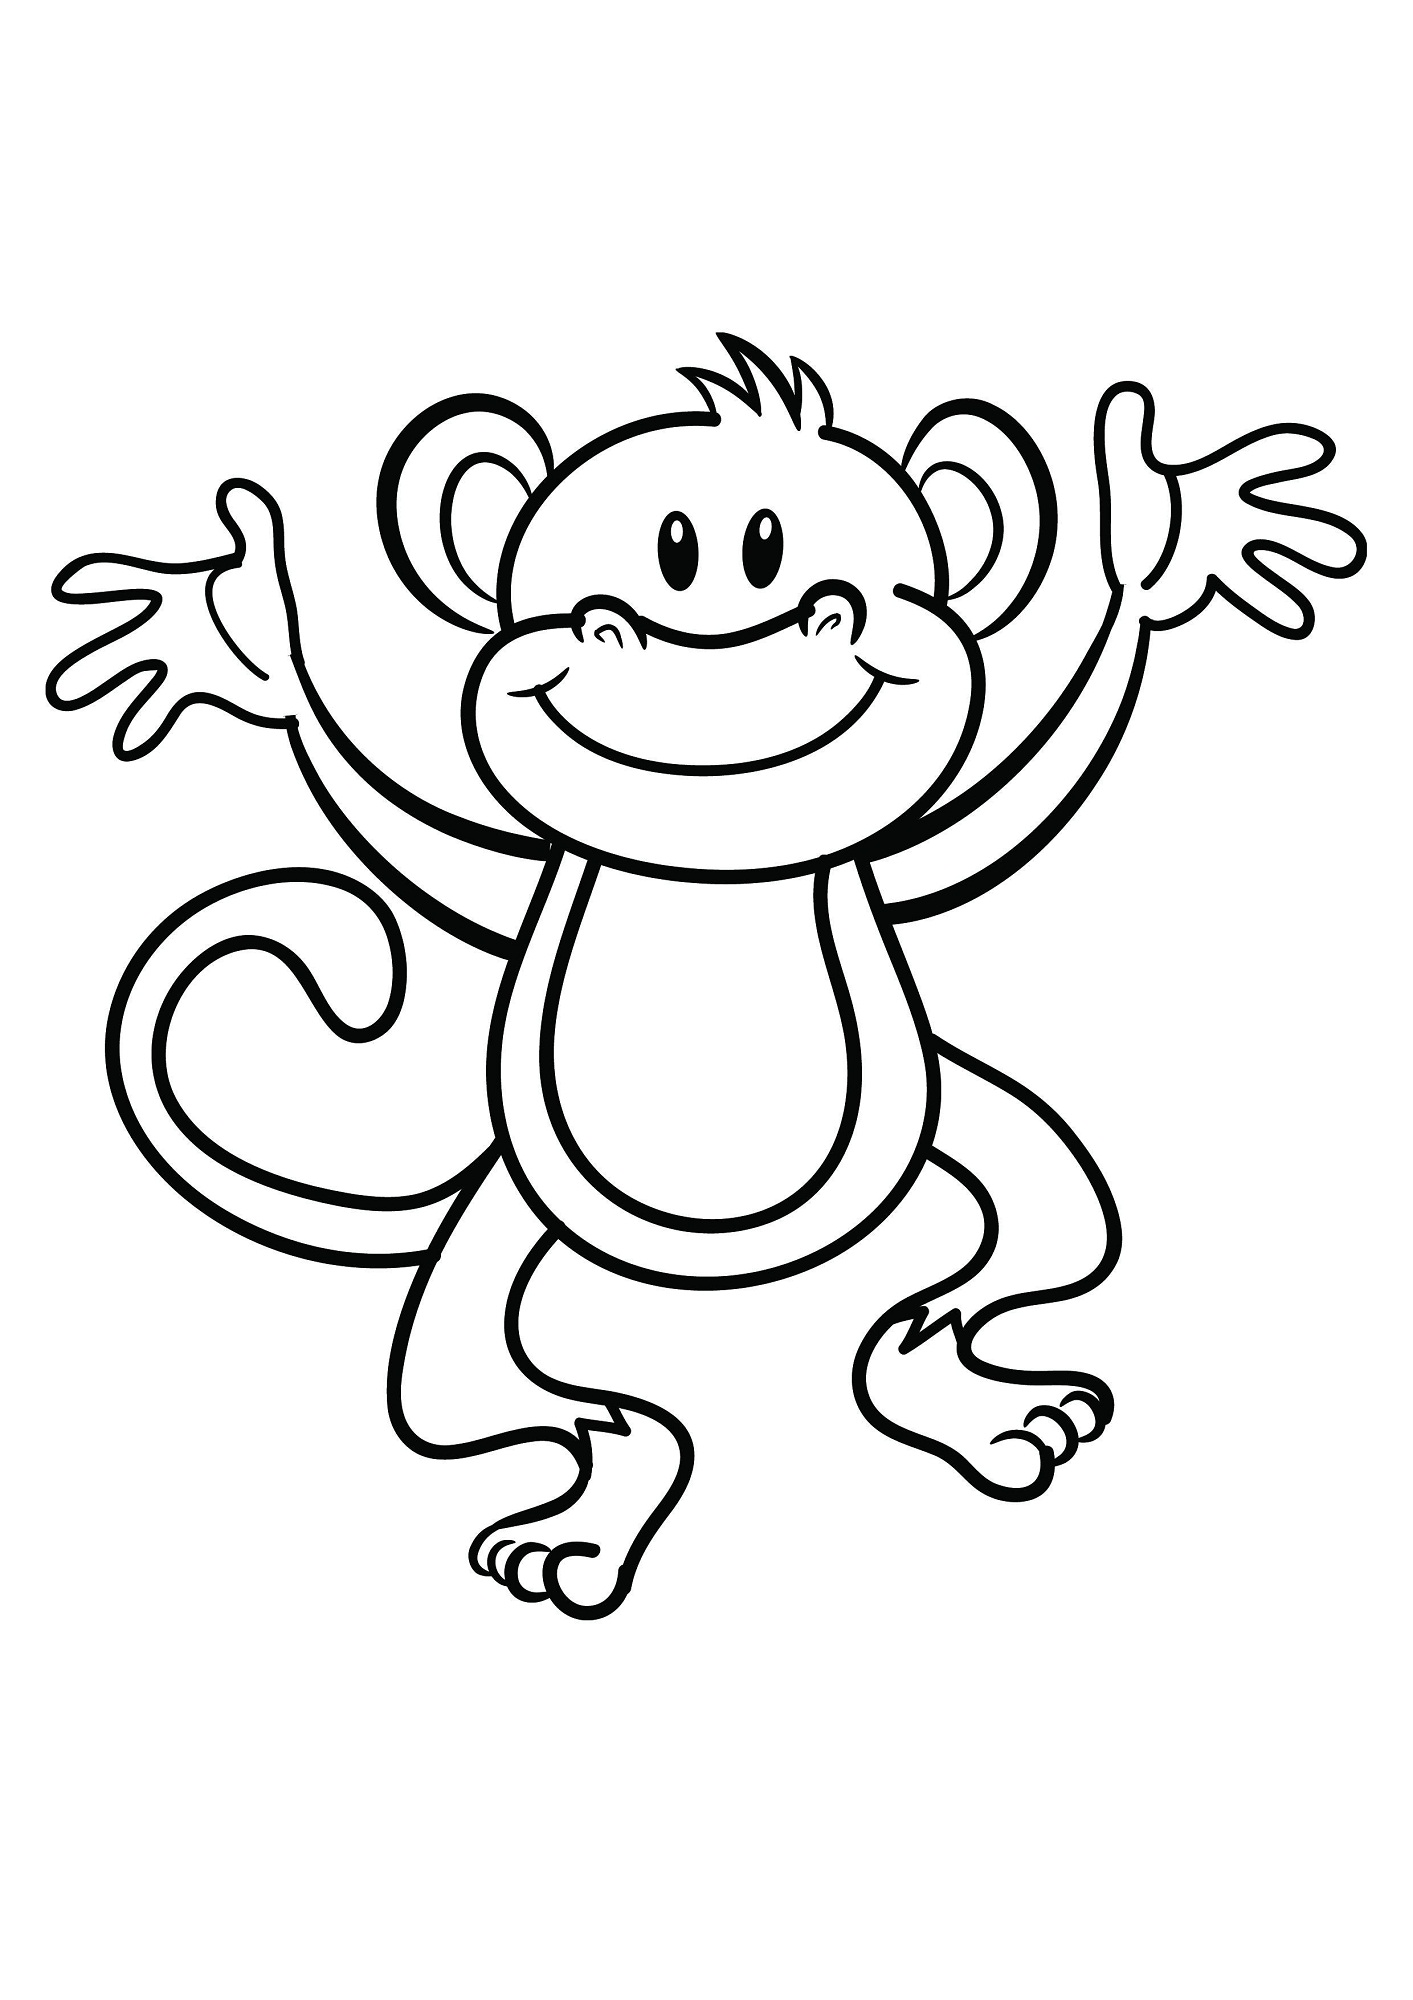 monkey pictures for coloring monkeys for kids monkeys kids coloring pages pictures monkey for coloring